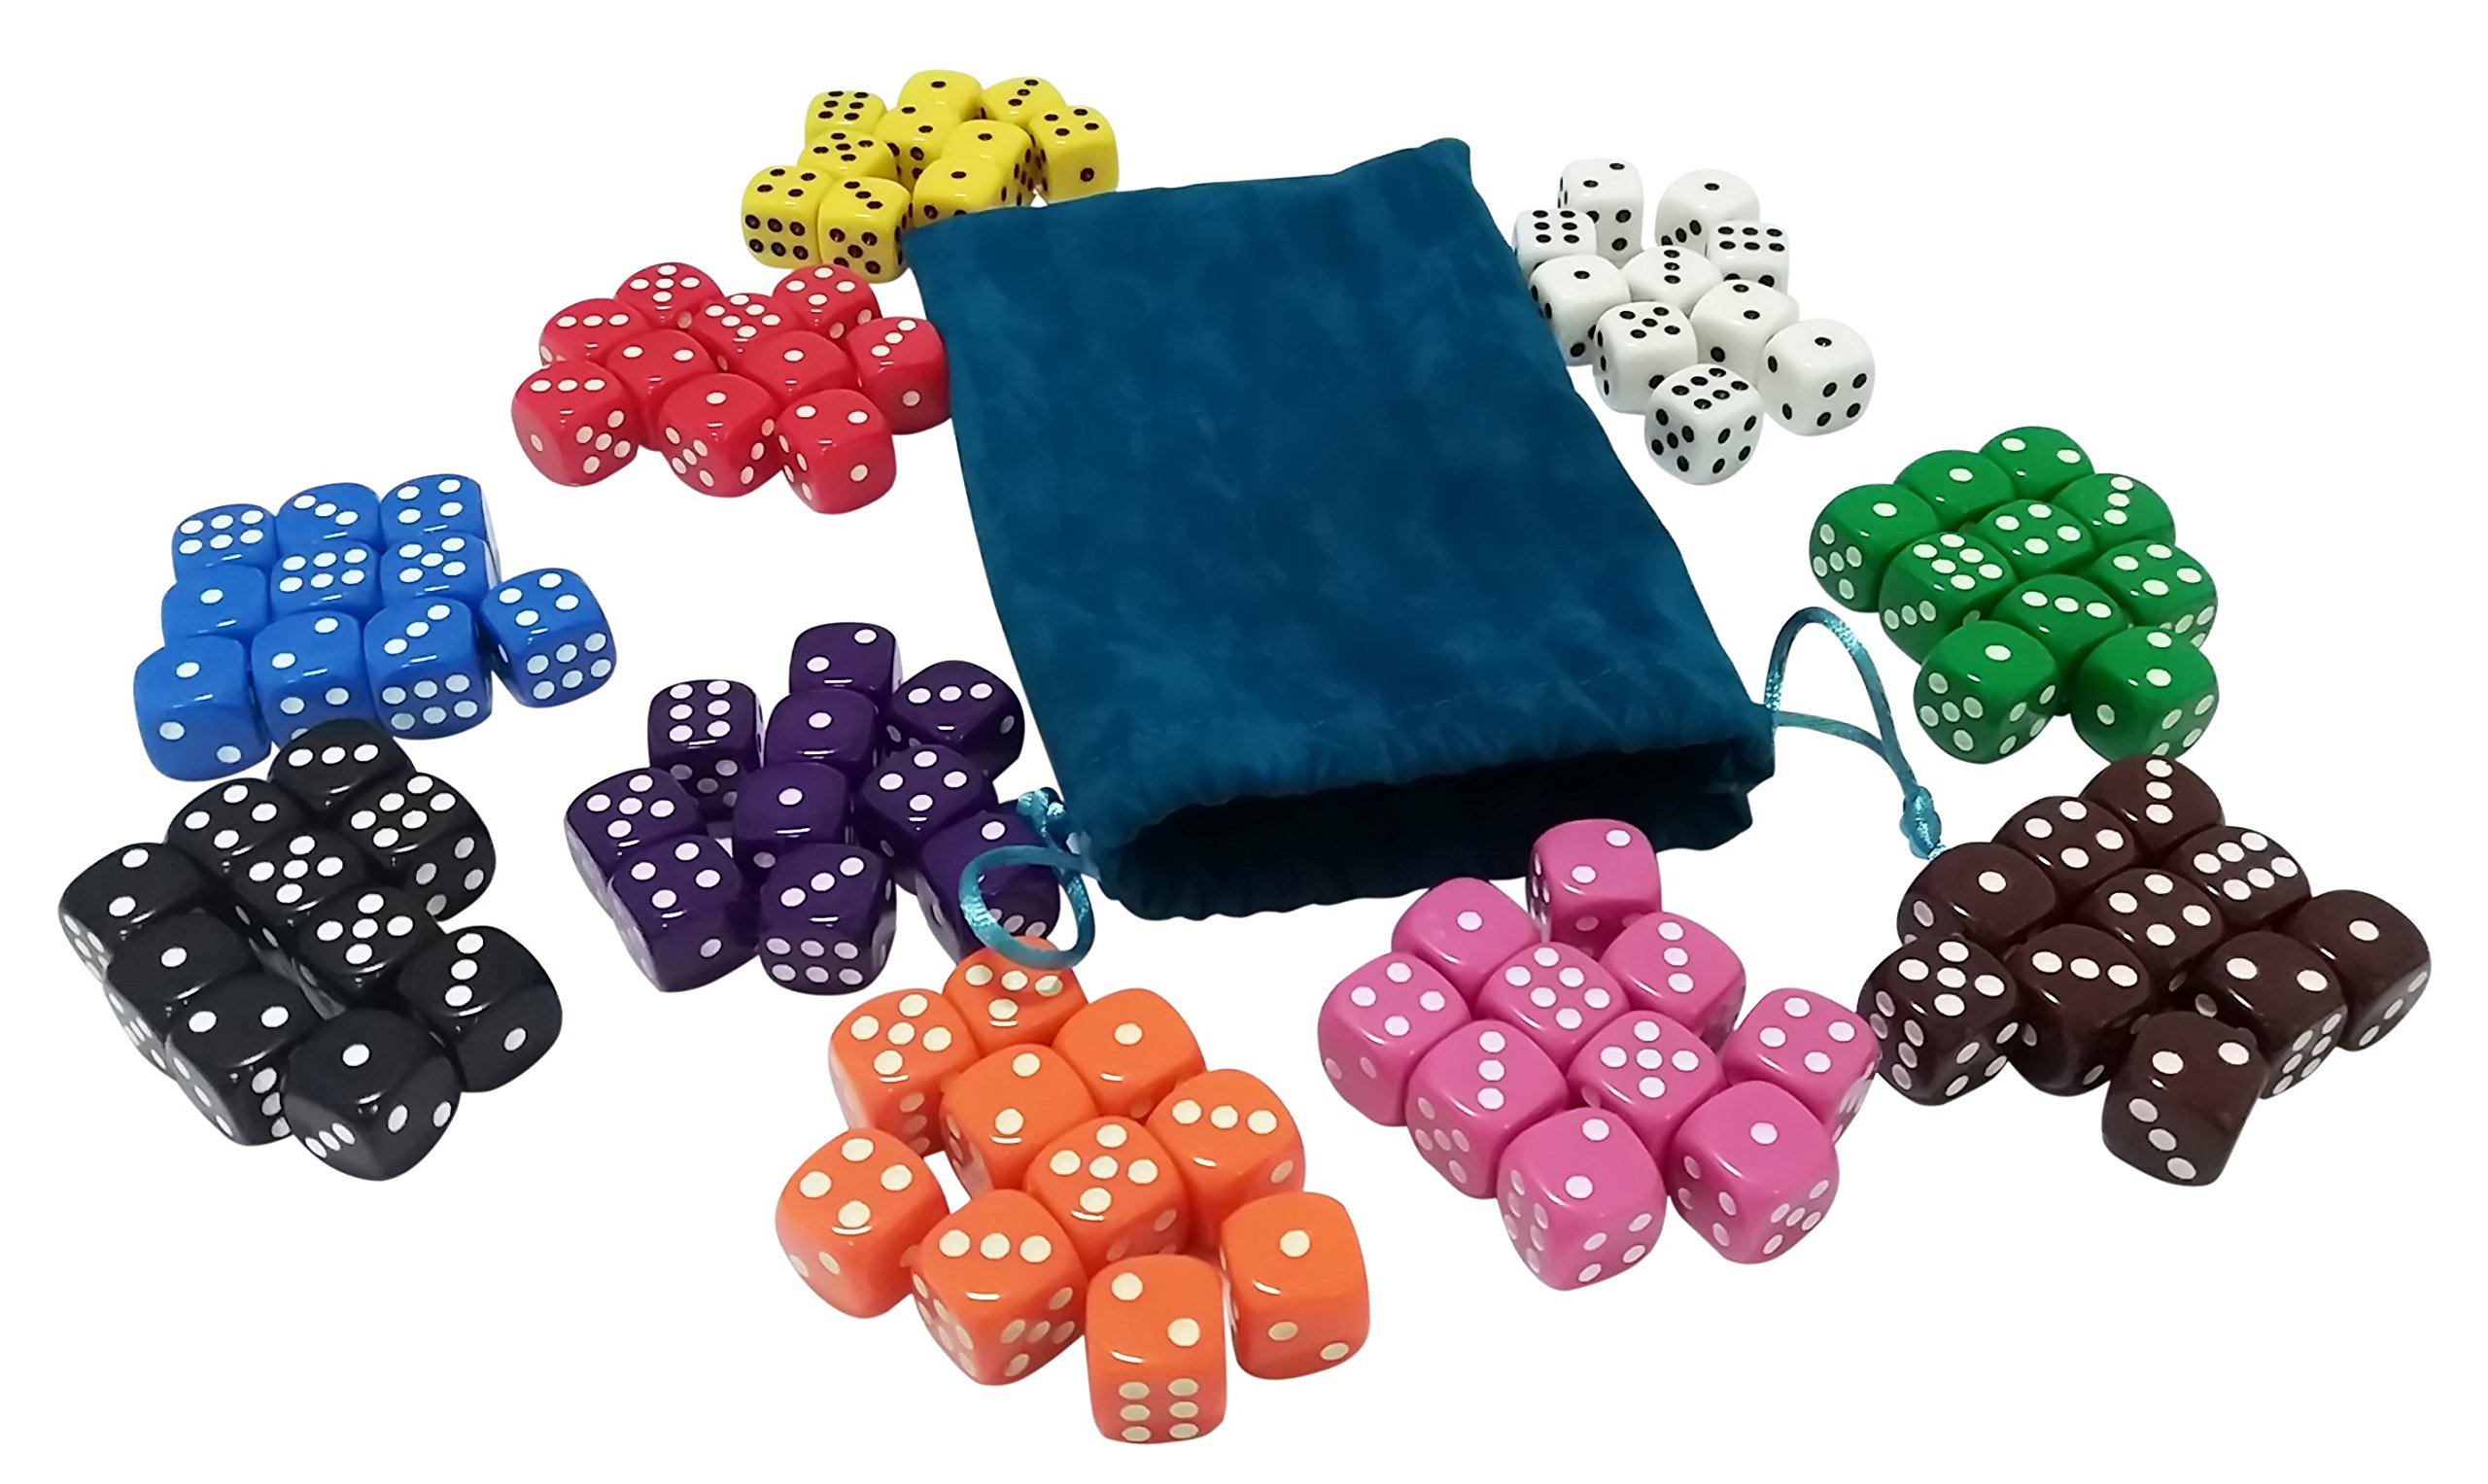 Visual Elite 100 Solid Colored Dice Set (Deep-Sea Corals Collection) with Dice Bag by Visual Elite